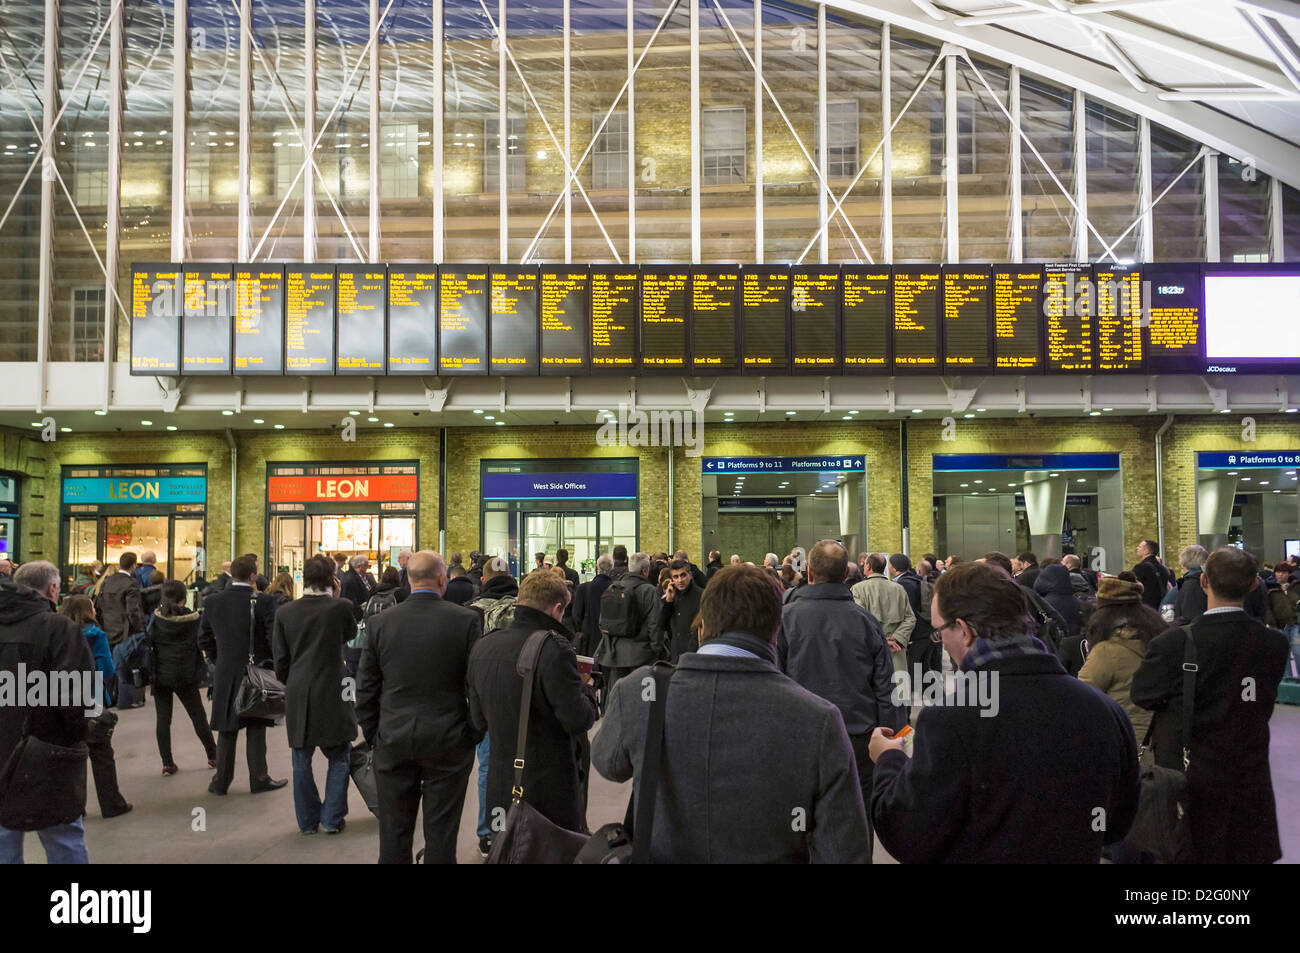 Commuters people looking at departure boards full of train delays cancellations at Kings Cross station, London, - Stock Image